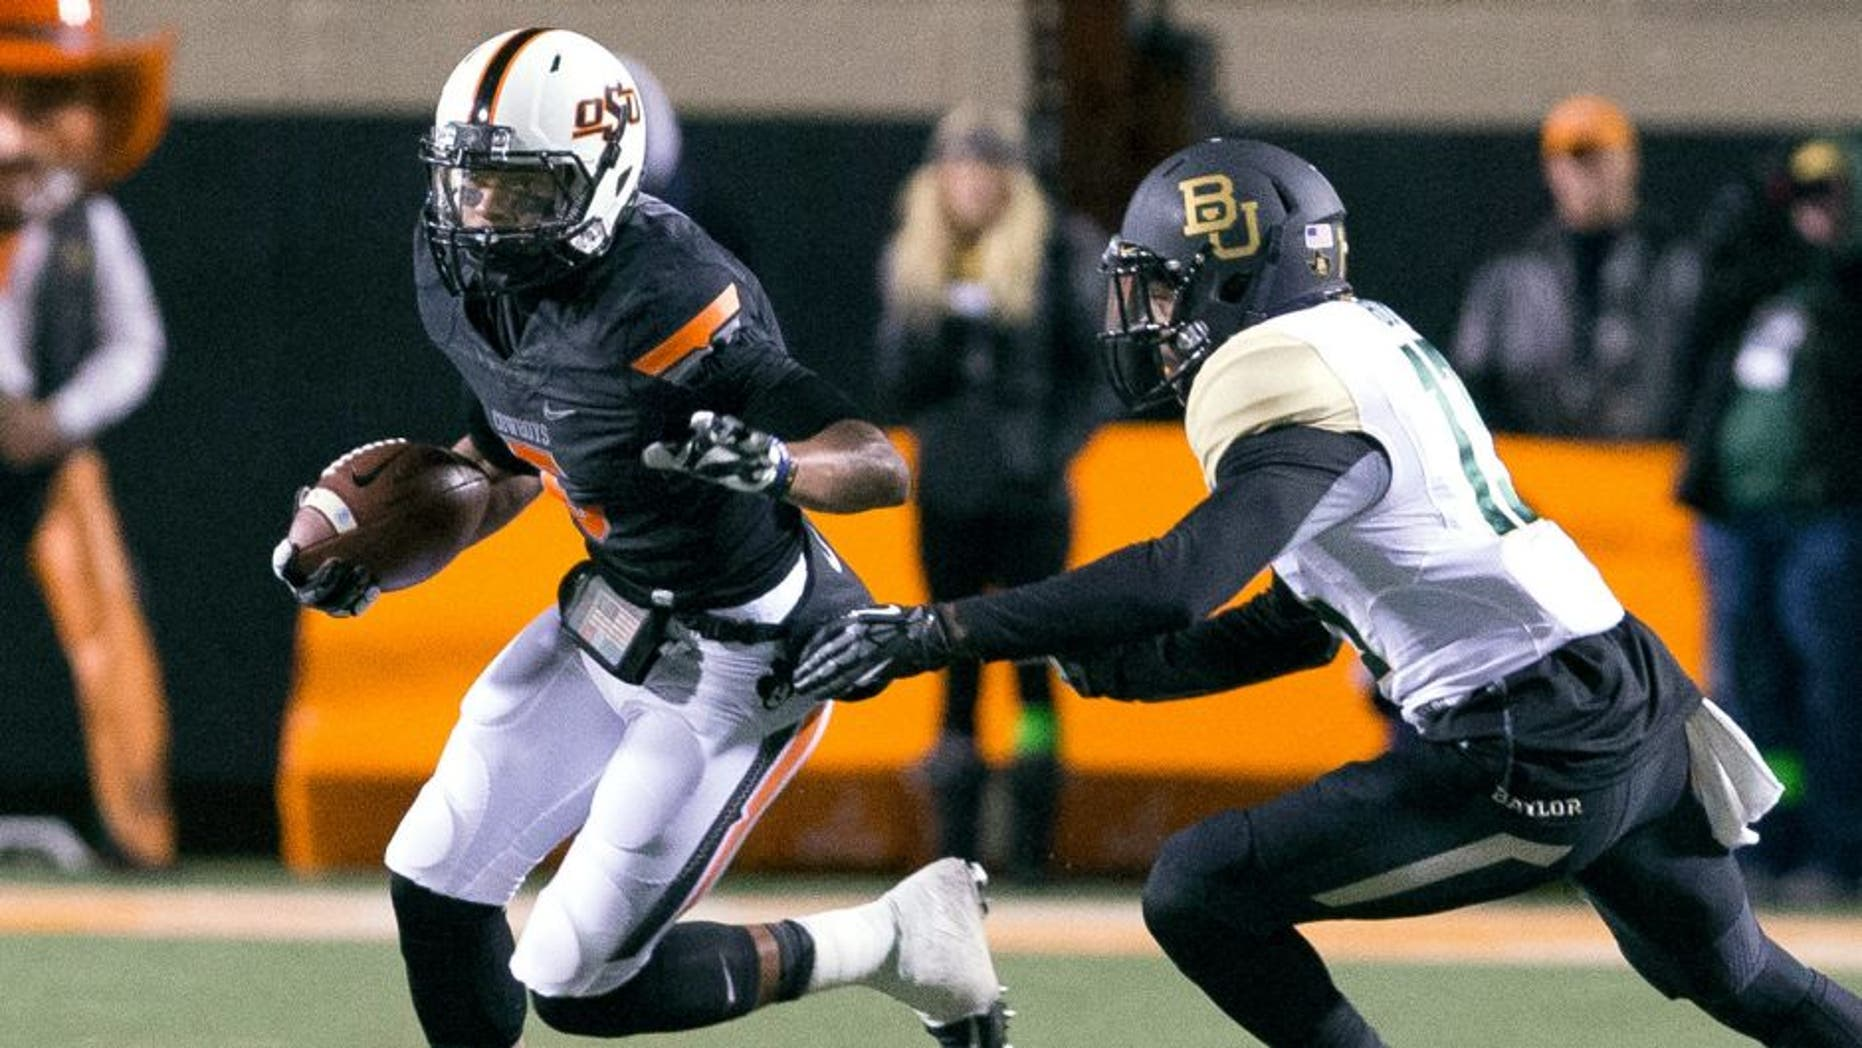 Nov 23, 2013; Stillwater, OK, USA; Oklahoma State Cowboys wide receiver Josh Stewart (5) runs the ball during the first quarter against Baylor Bears safety Terrell Burt (13) at Boone Pickens Stadium. Mandatory Credit: Richard Rowe-USA TODAY Sports